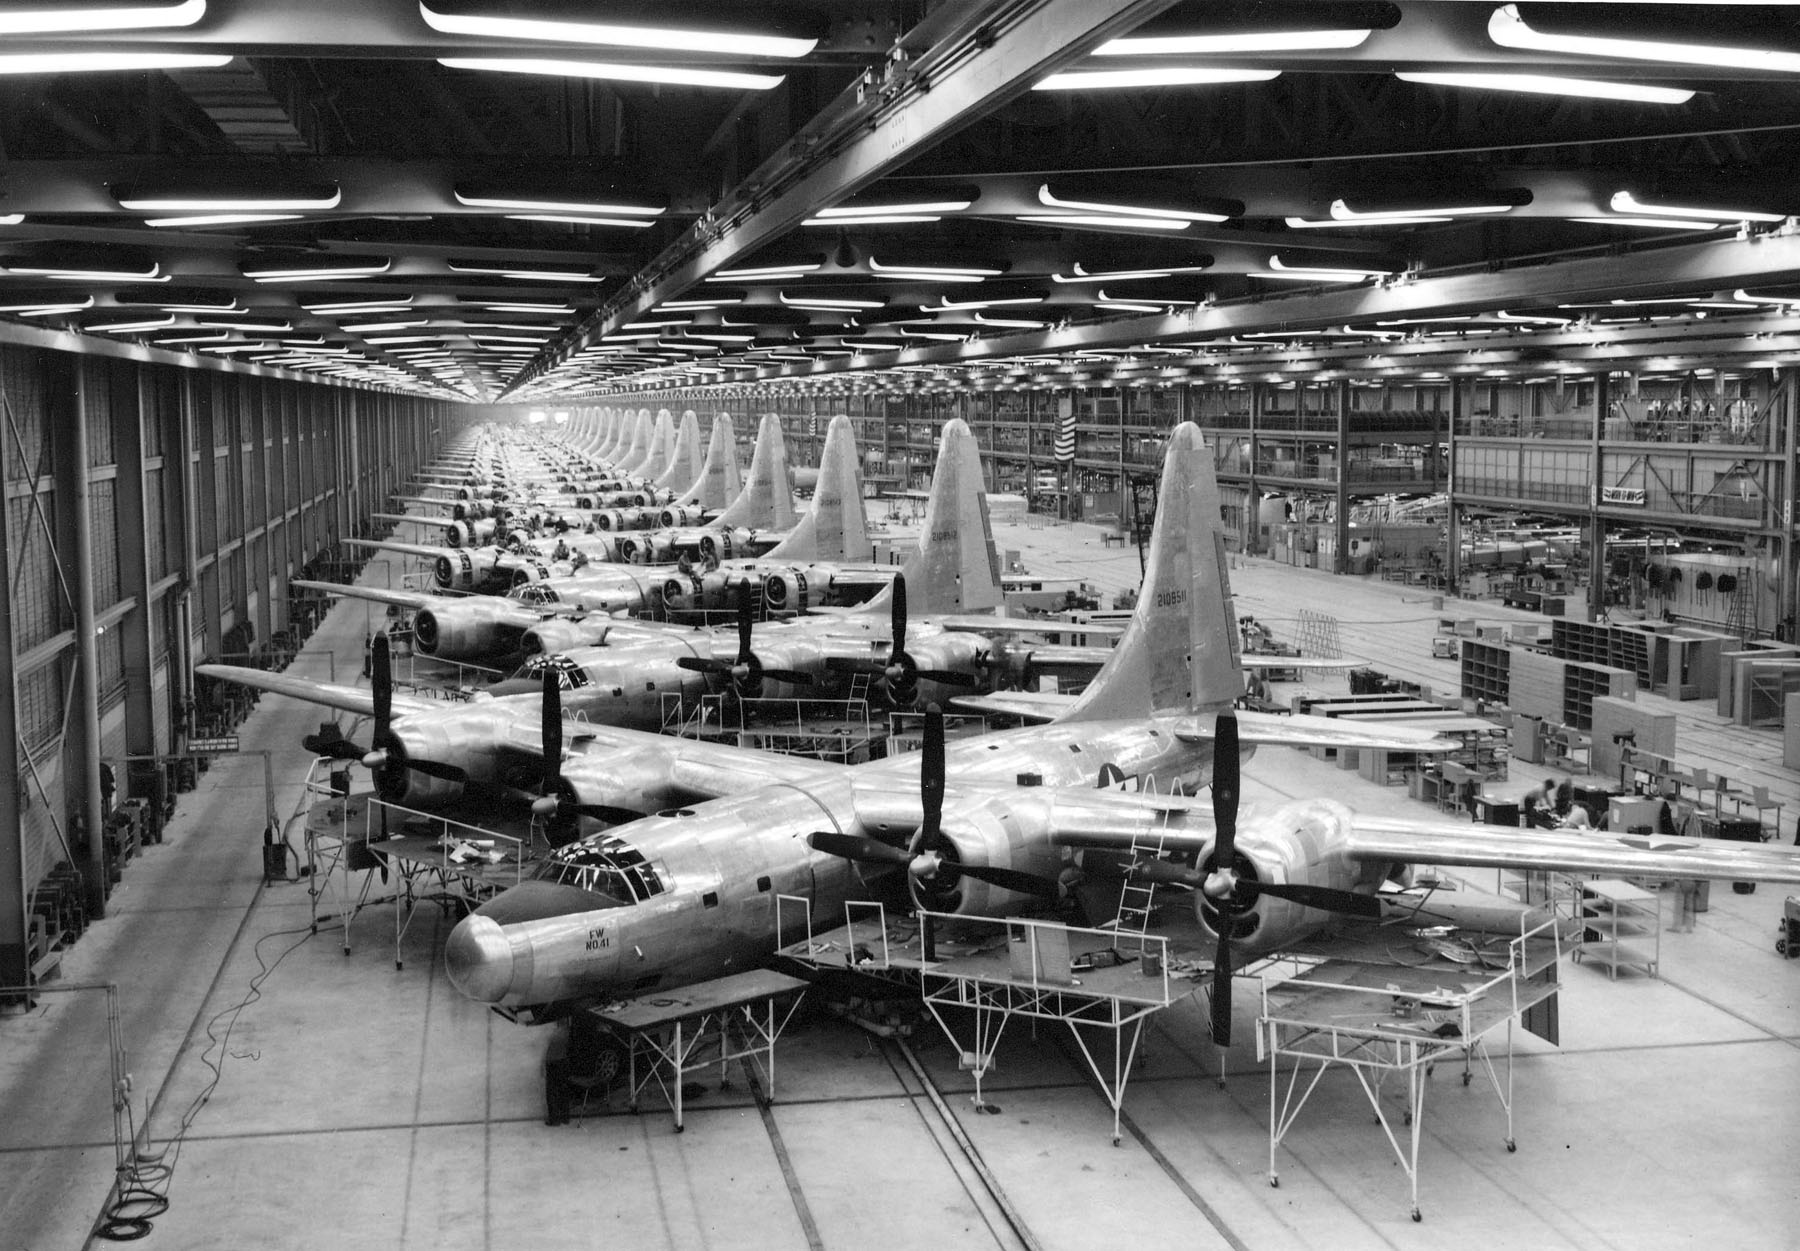 B-32 bomber production at Ford's factory (Photo source: US Air Force)